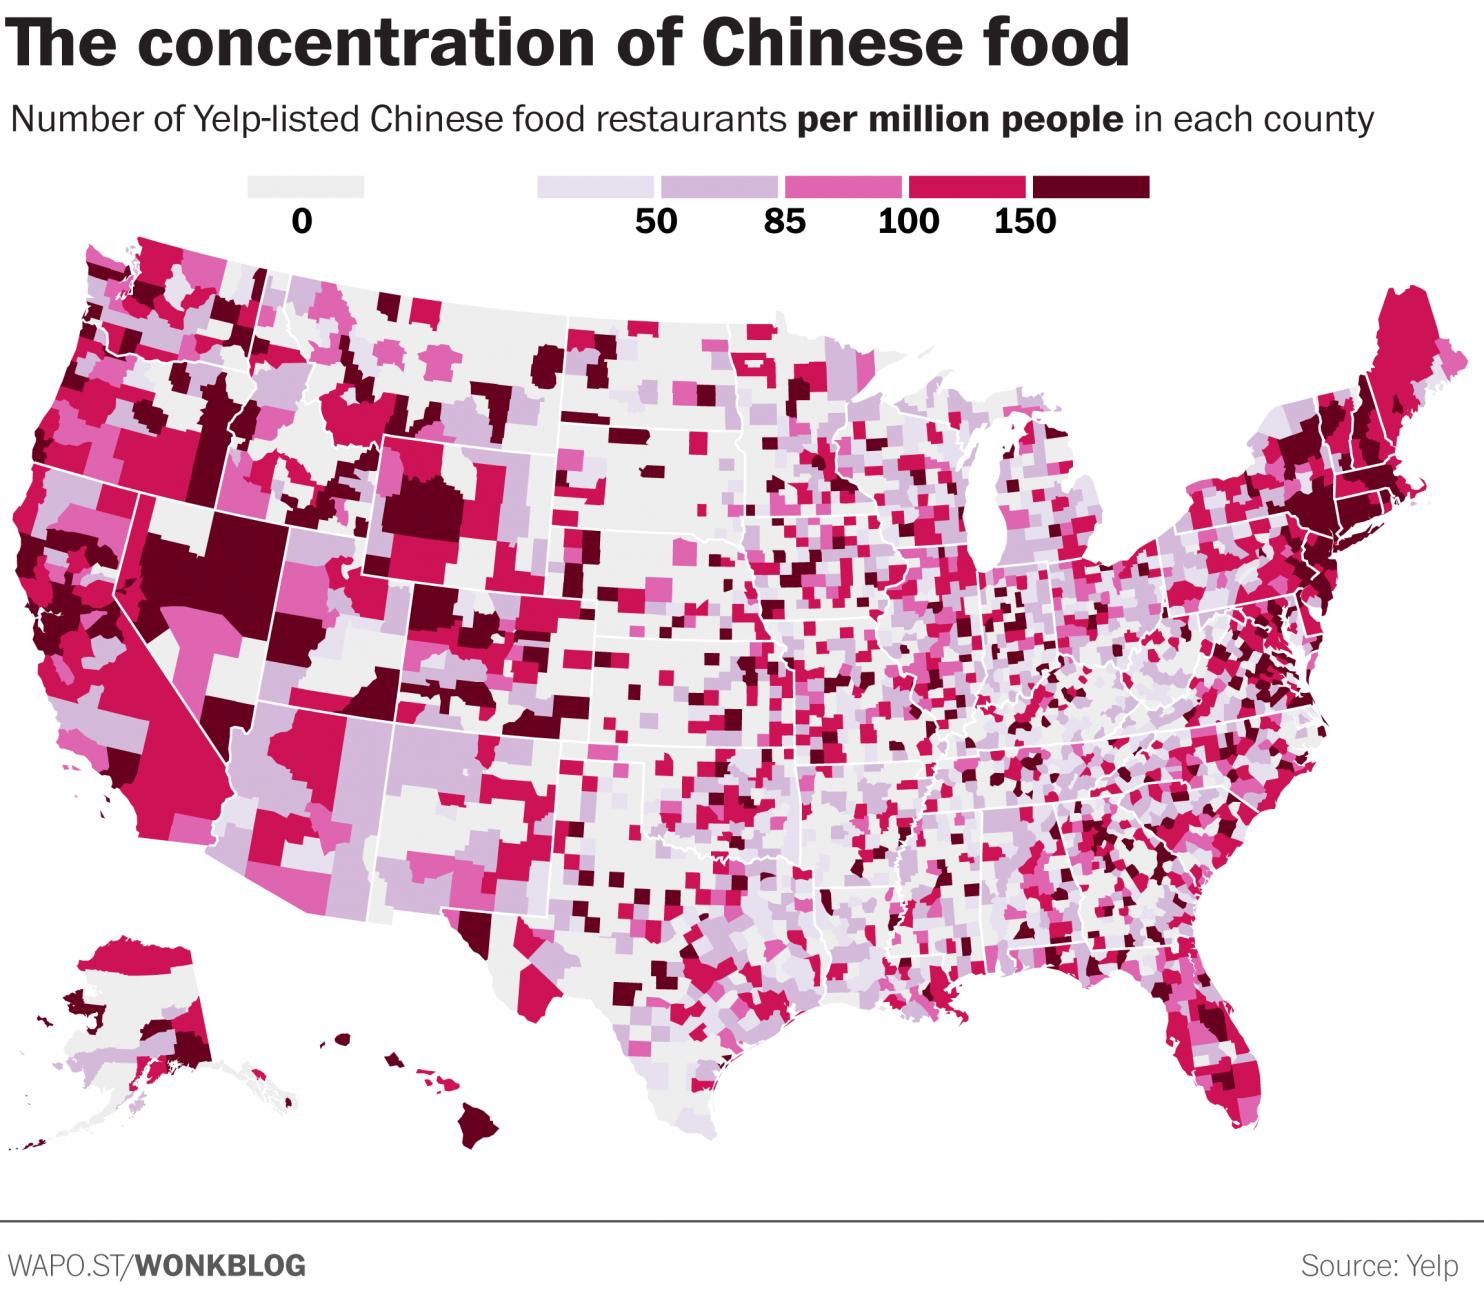 Concentration of Chinese restaurants with the U.S.